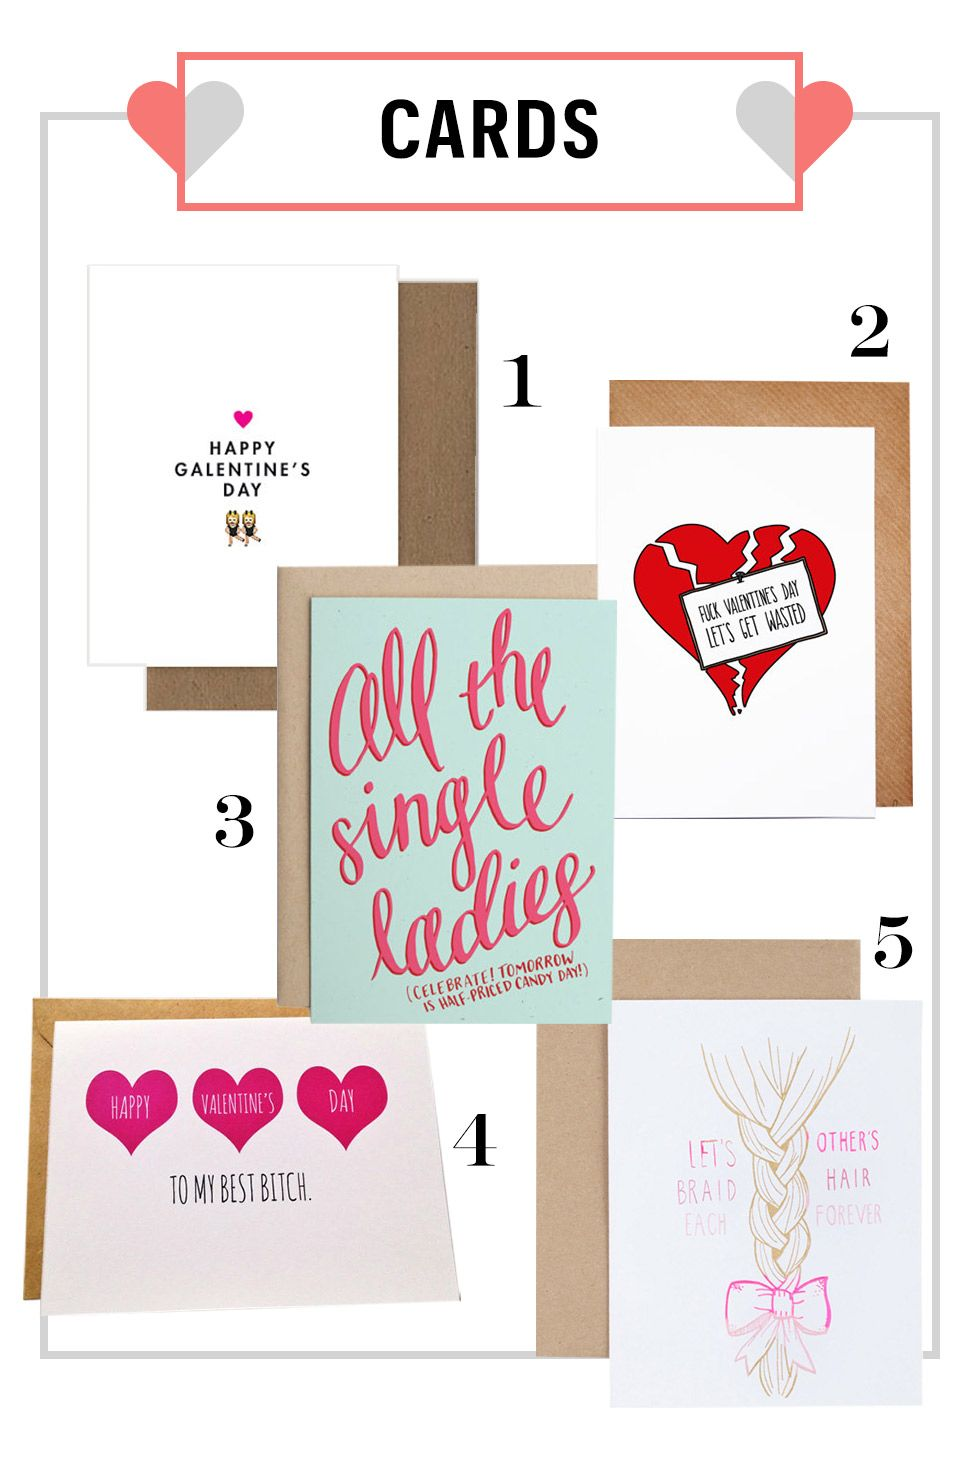 "<p>Someone can't make it to the shindig? To make her less devastated that she missed out, send her one of these cheeky cards.</p><p><strong>1.</strong> Happy Galentine's Day Emoji Card, $4&#x3B; <a href=""https://www.etsy.com/listing/218100974/happy-galentines-day-emoji-card?ga_order=most_relevant&ga_search_type=all&ga_view_type=gallery&ga_search_query=galentine%27s%20day&ref=sr_gallery_6"">etsy.com</a>. </p><p><strong>2.</strong> Rude Valentine Card, $4.13&#x3B; <a href=""https://www.etsy.com/listing/172774019/rude-valentine-card-anti-valentine-anti?ga_order=most_relevant&ga_search_type=all&ga_view_type=gallery&ga_search_query=galentine%27s%20day&ref=sr_gallery_21"">etsy.com</a>. </p><p><strong>3.</strong> All The Single Ladies Card, $4.50&#x3B; <a href=""https://www.etsy.com/listing/218347817/all-the-single-ladies-galentines-day?ga_order=most_relevant&ga_search_type=all&ga_view_type=gallery&ga_search_query=galentine%27s%20day&ref=sr_gallery_3"">etsy.com.</a> </p><p><strong>4.</strong> Friend Valentine's Day Card, $4&#x3B; <a href=""https://www.etsy.com/listing/216280103/friend-valentines-day-card-best-friend?ga_order=most_relevant&ga_search_type=all&ga_view_type=gallery&ga_search_query=galentine%27s%20day&ref=sr_gallery_42"">etsy.com</a>.  </p><p><strong>5.</strong> Braid Eachother's Hair Card, $5&#x3B; <a href=""http://www.catbirdnyc.com/home-gifts/braid-each-others-hair-card.html"">catbirdnyc.com</a>. </p>"